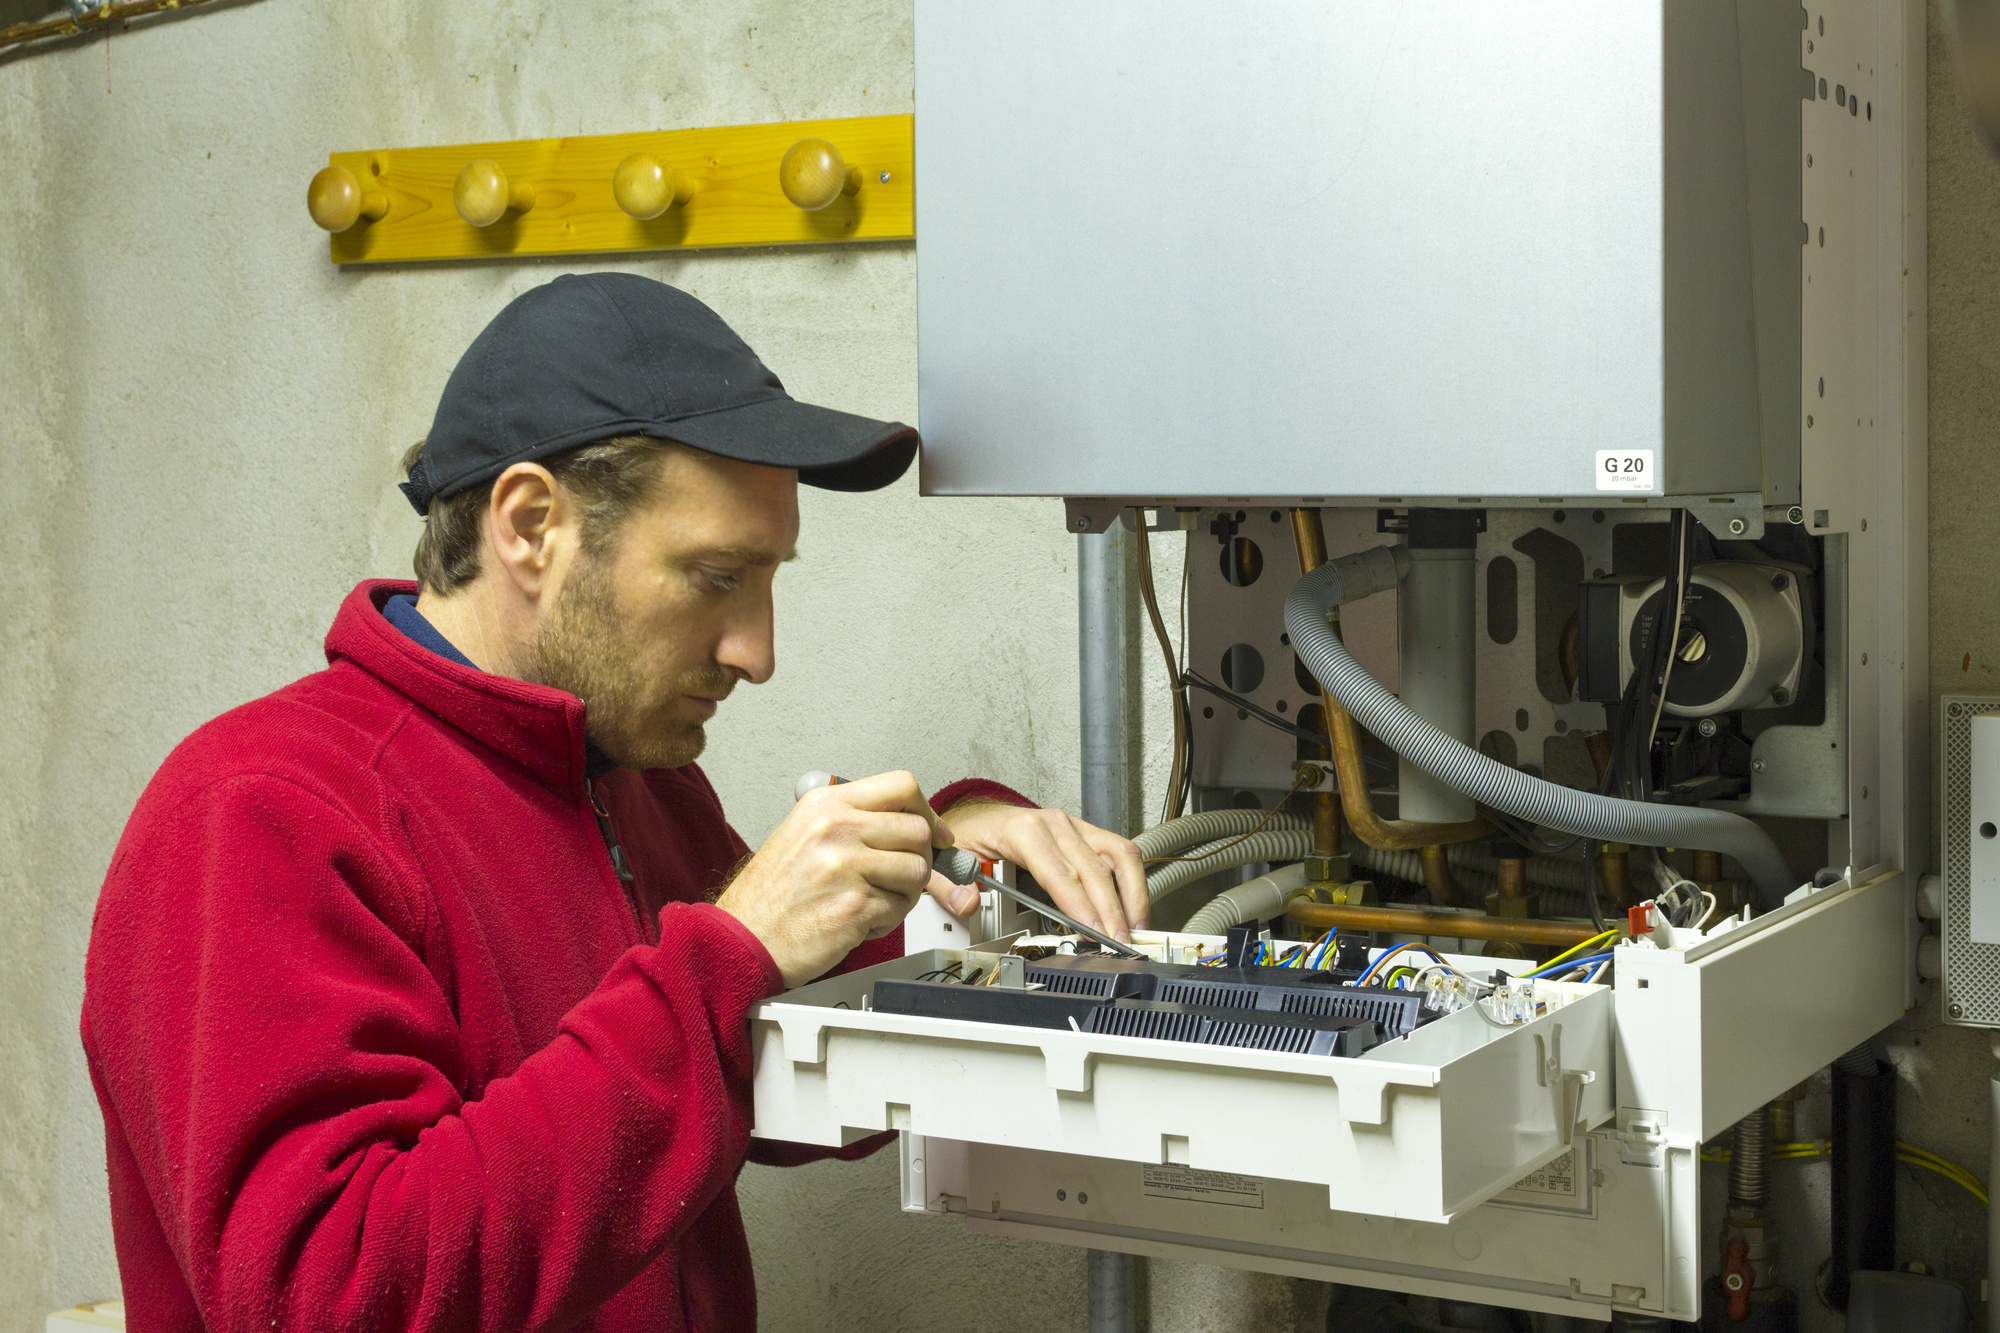 6 Factors to Consider When Choosing a Heating Repair Service